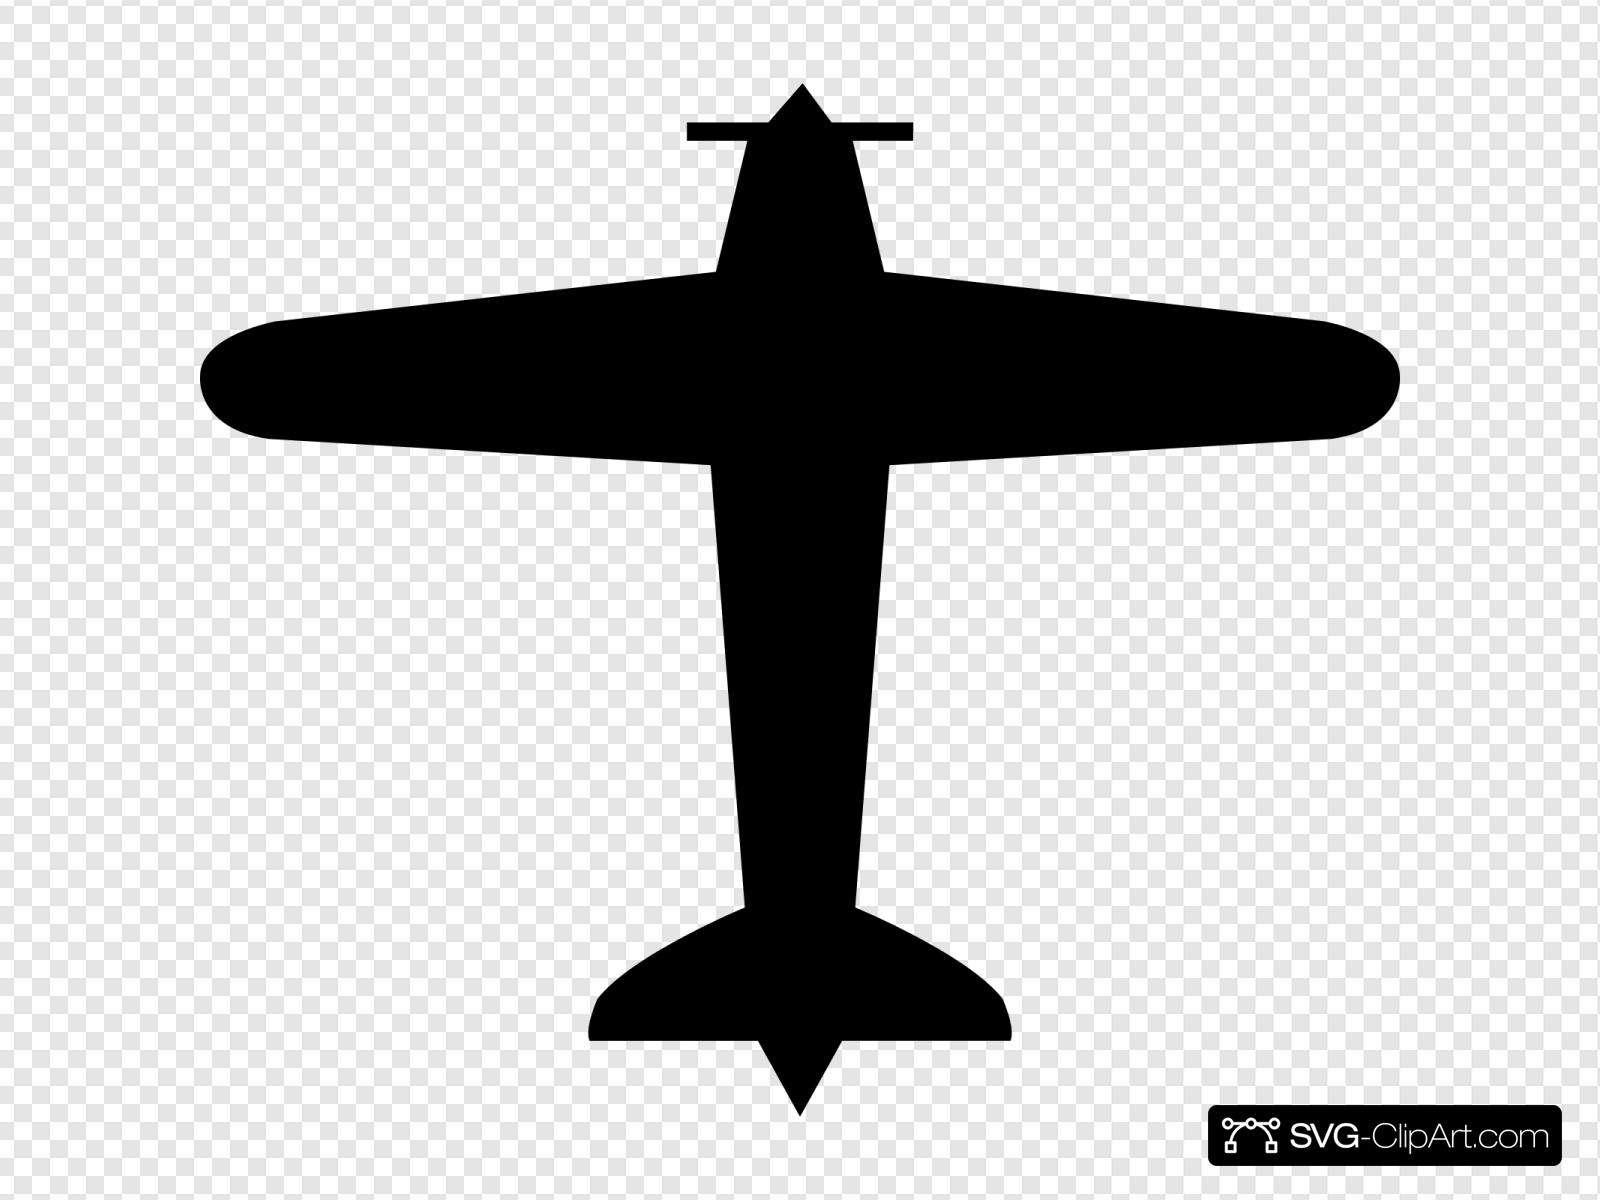 Airplane Svg Vector Airplane Clip Art Svg Clipart